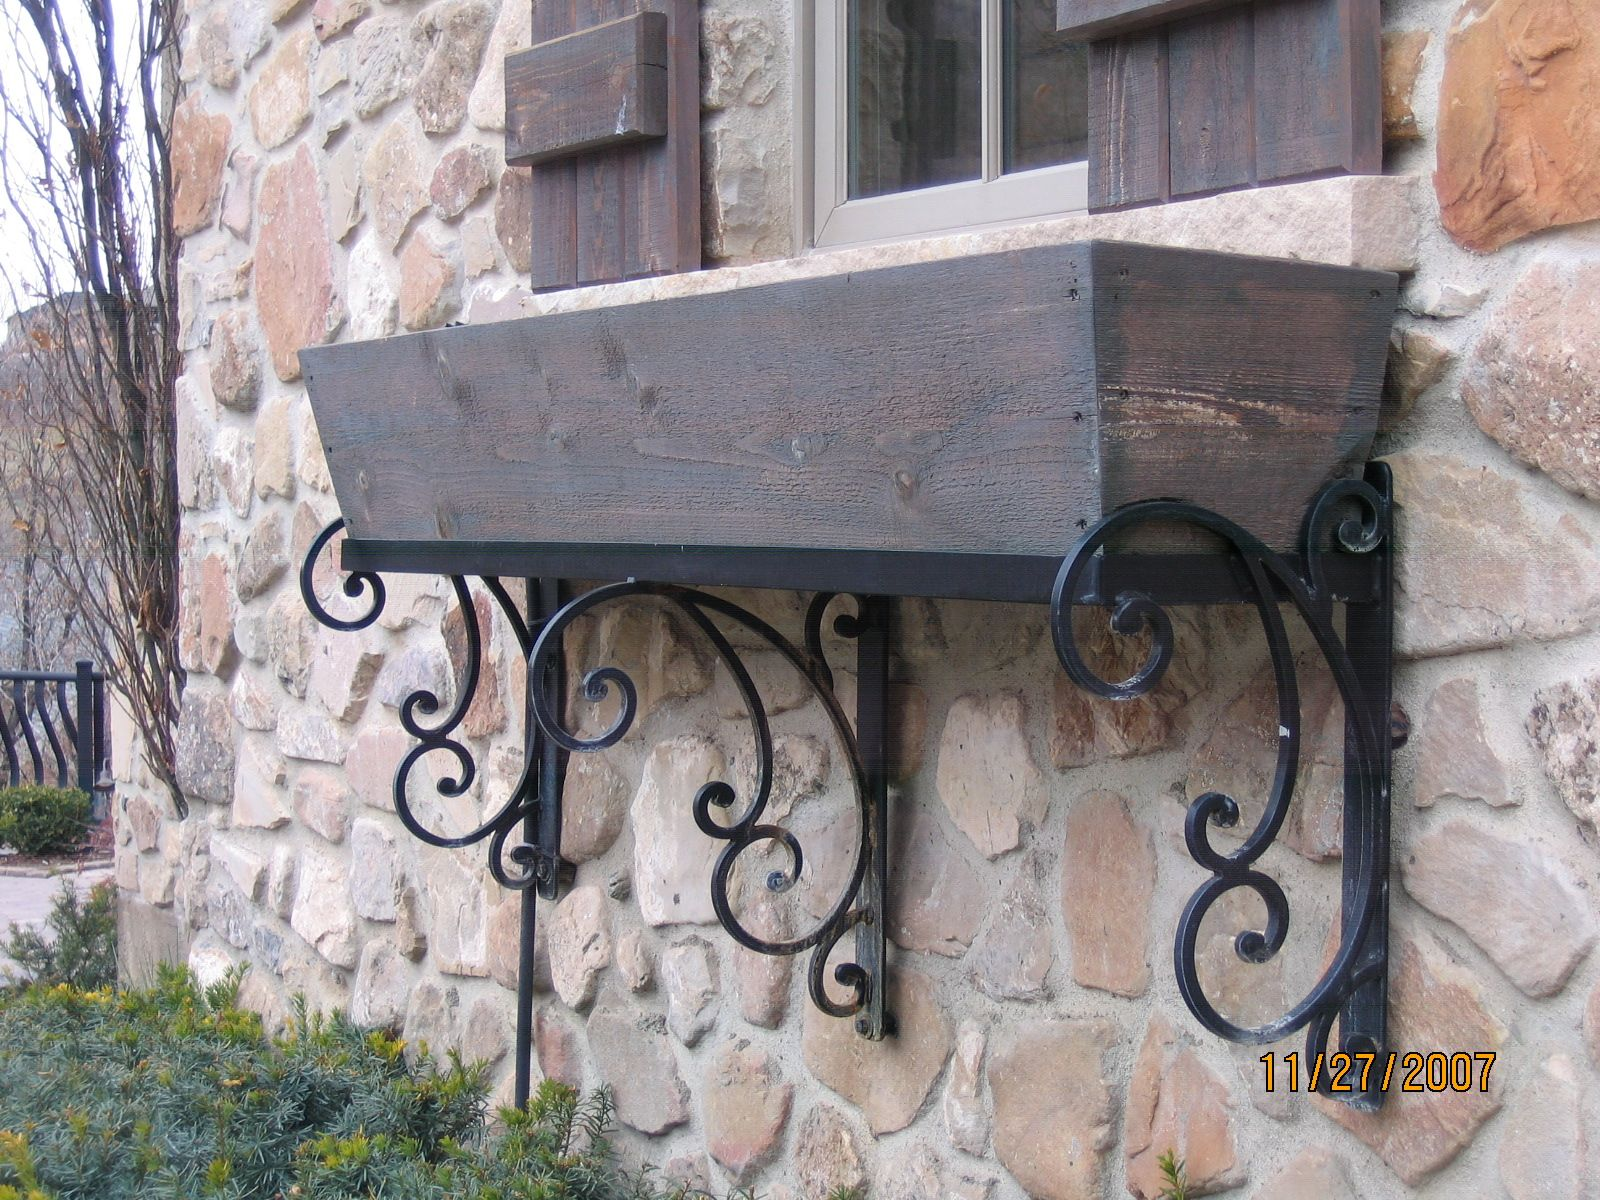 SALT LAKE CITY UTAH ORNAMENTAL WINDOW BOXES IRON RAILING